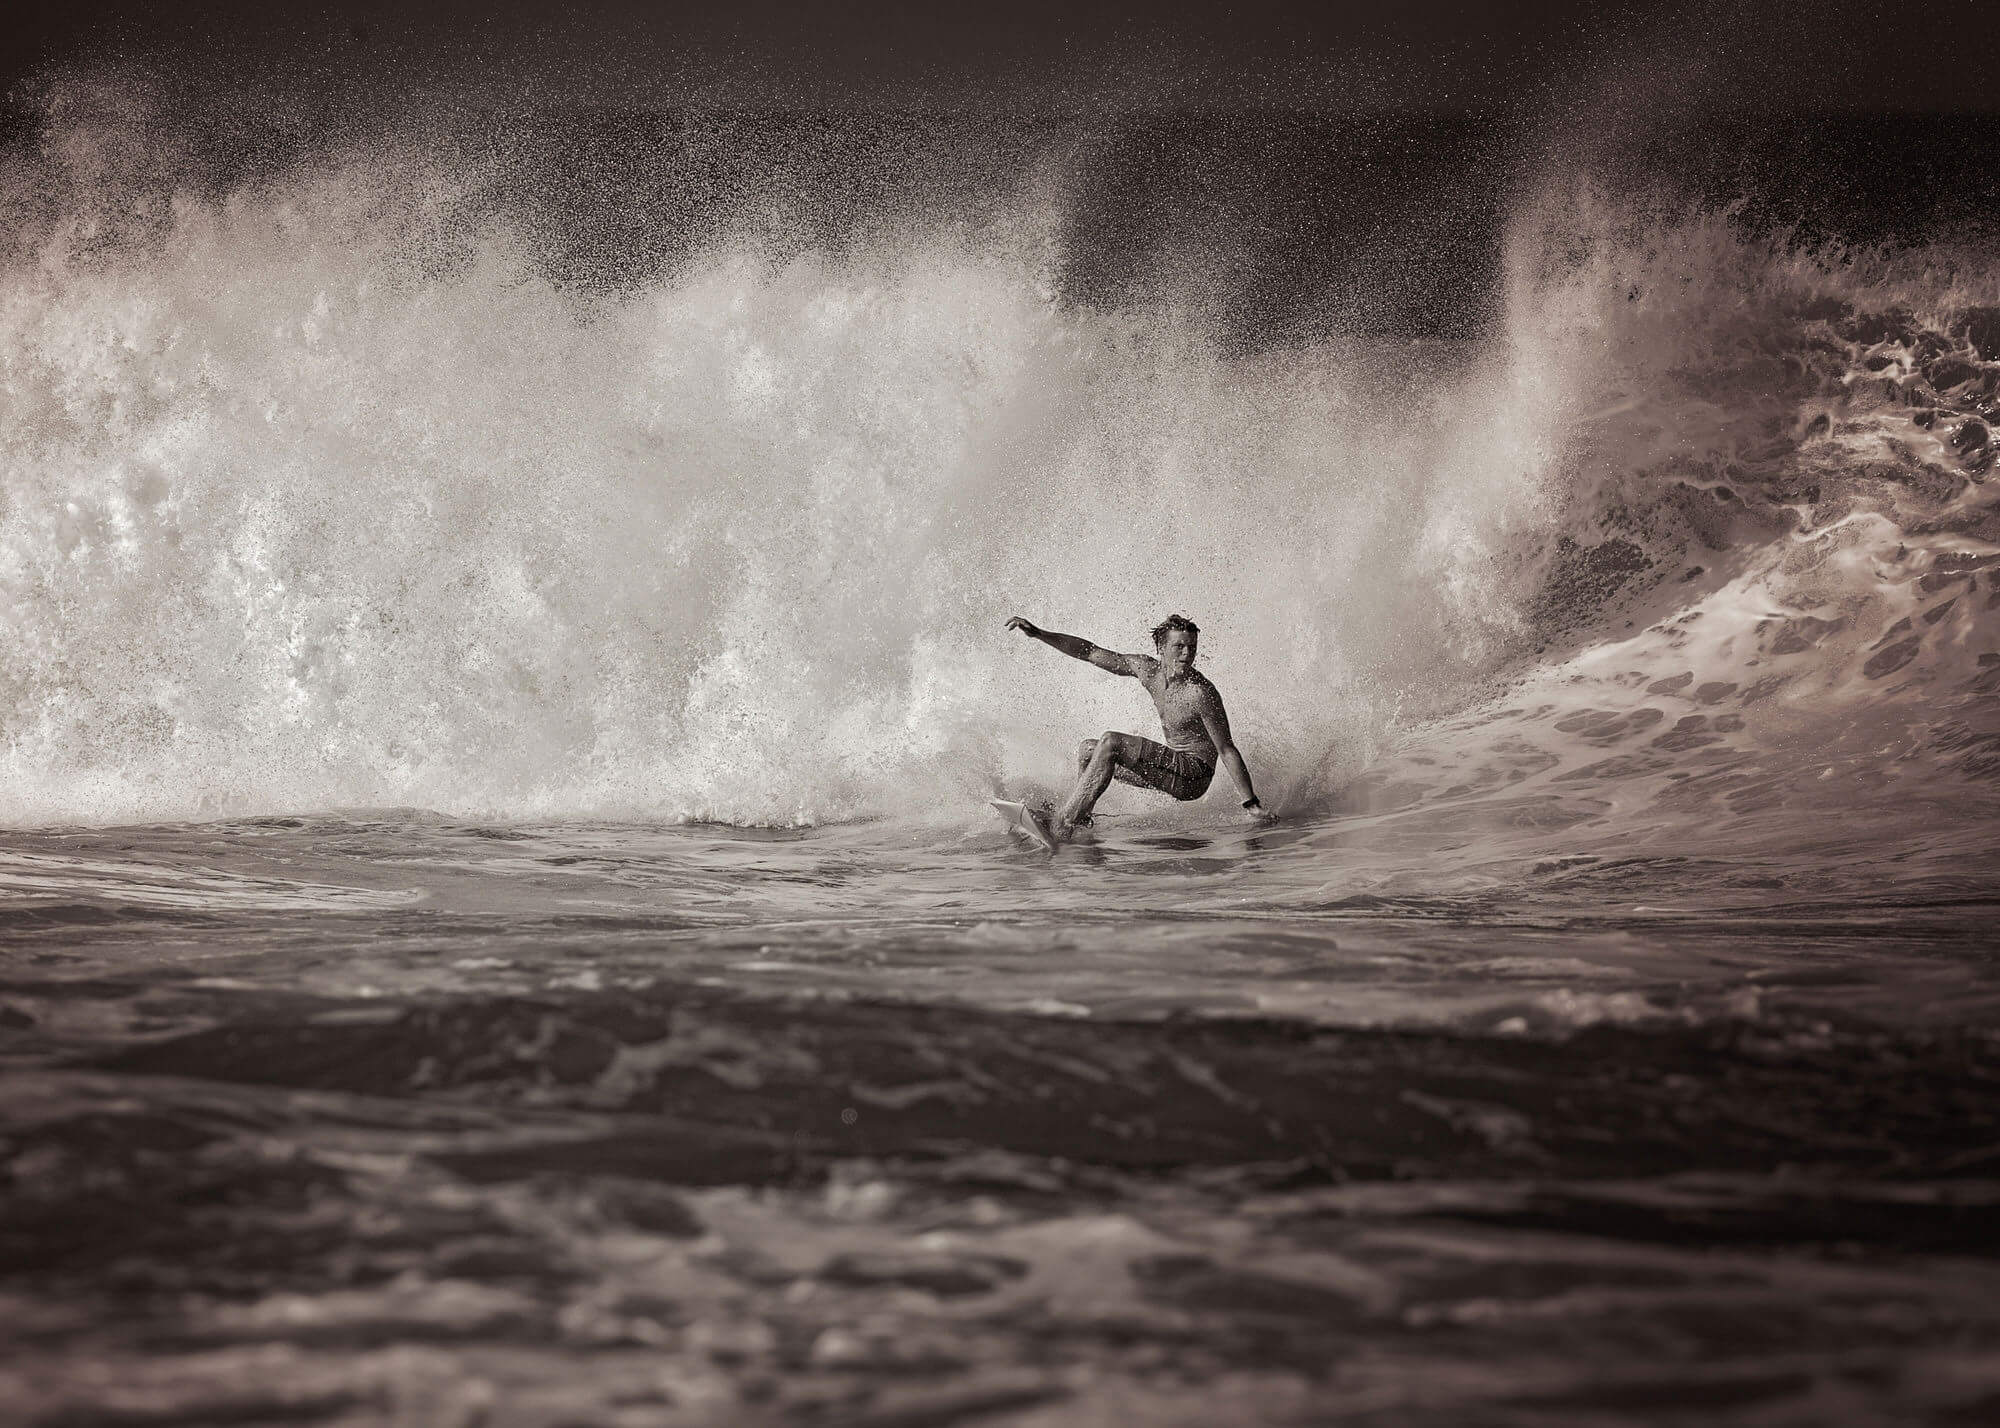 Man riding out of big wave